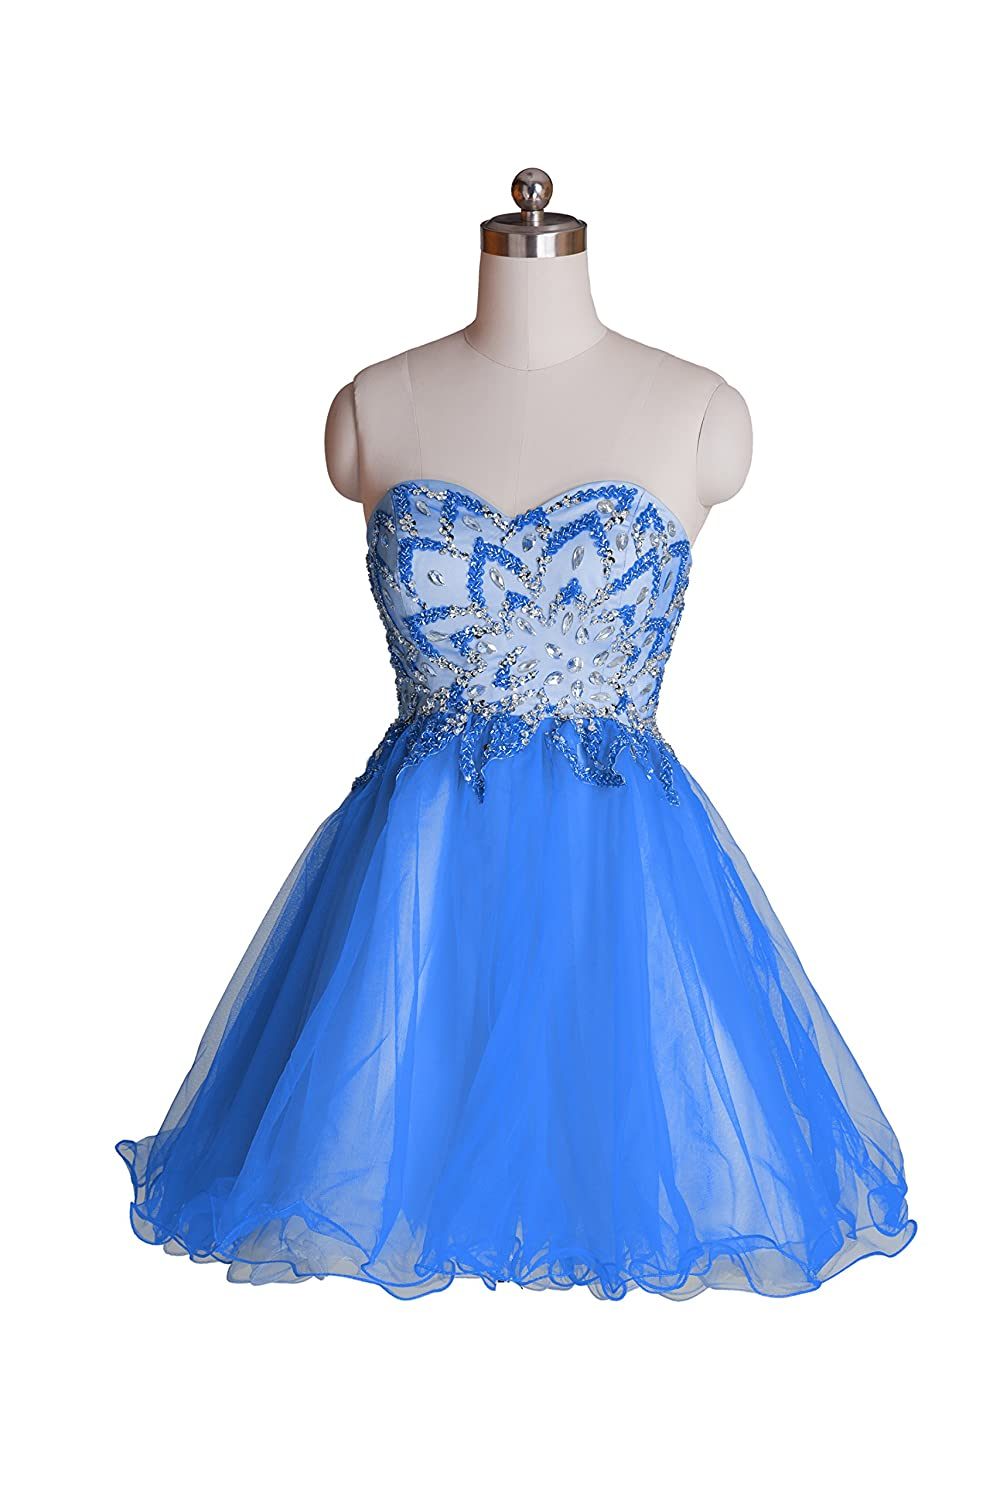 Queenworld Women's Evening Homecoming Prom Party Cocktail Dress US-20W Blue